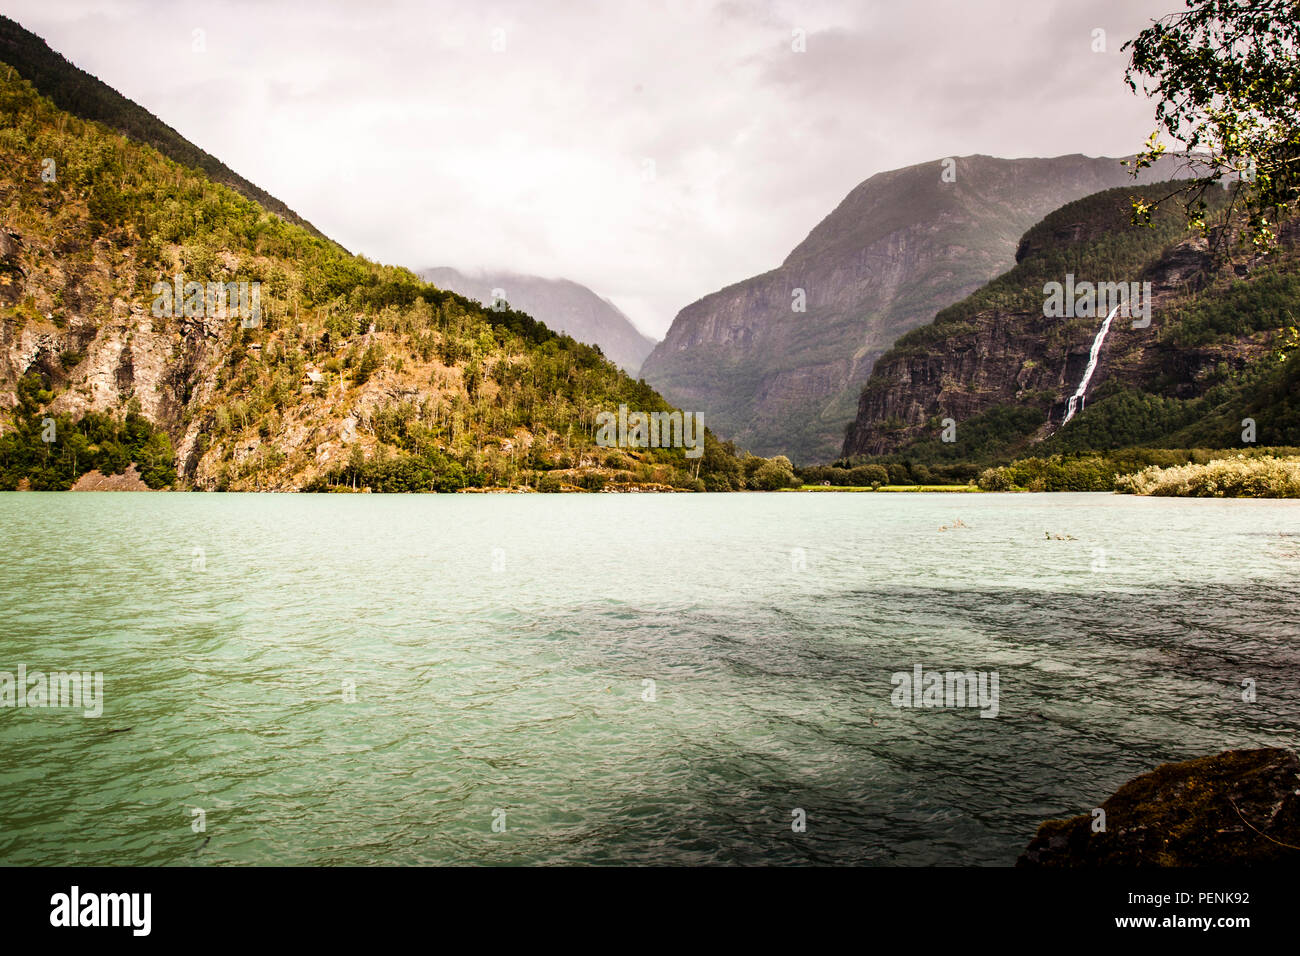 Reconstruction of Ludwig Wittgensteins wooden chalet on its own foundation high on the slope of the Lustrafjord near the town of Skjolden. - Stock Image